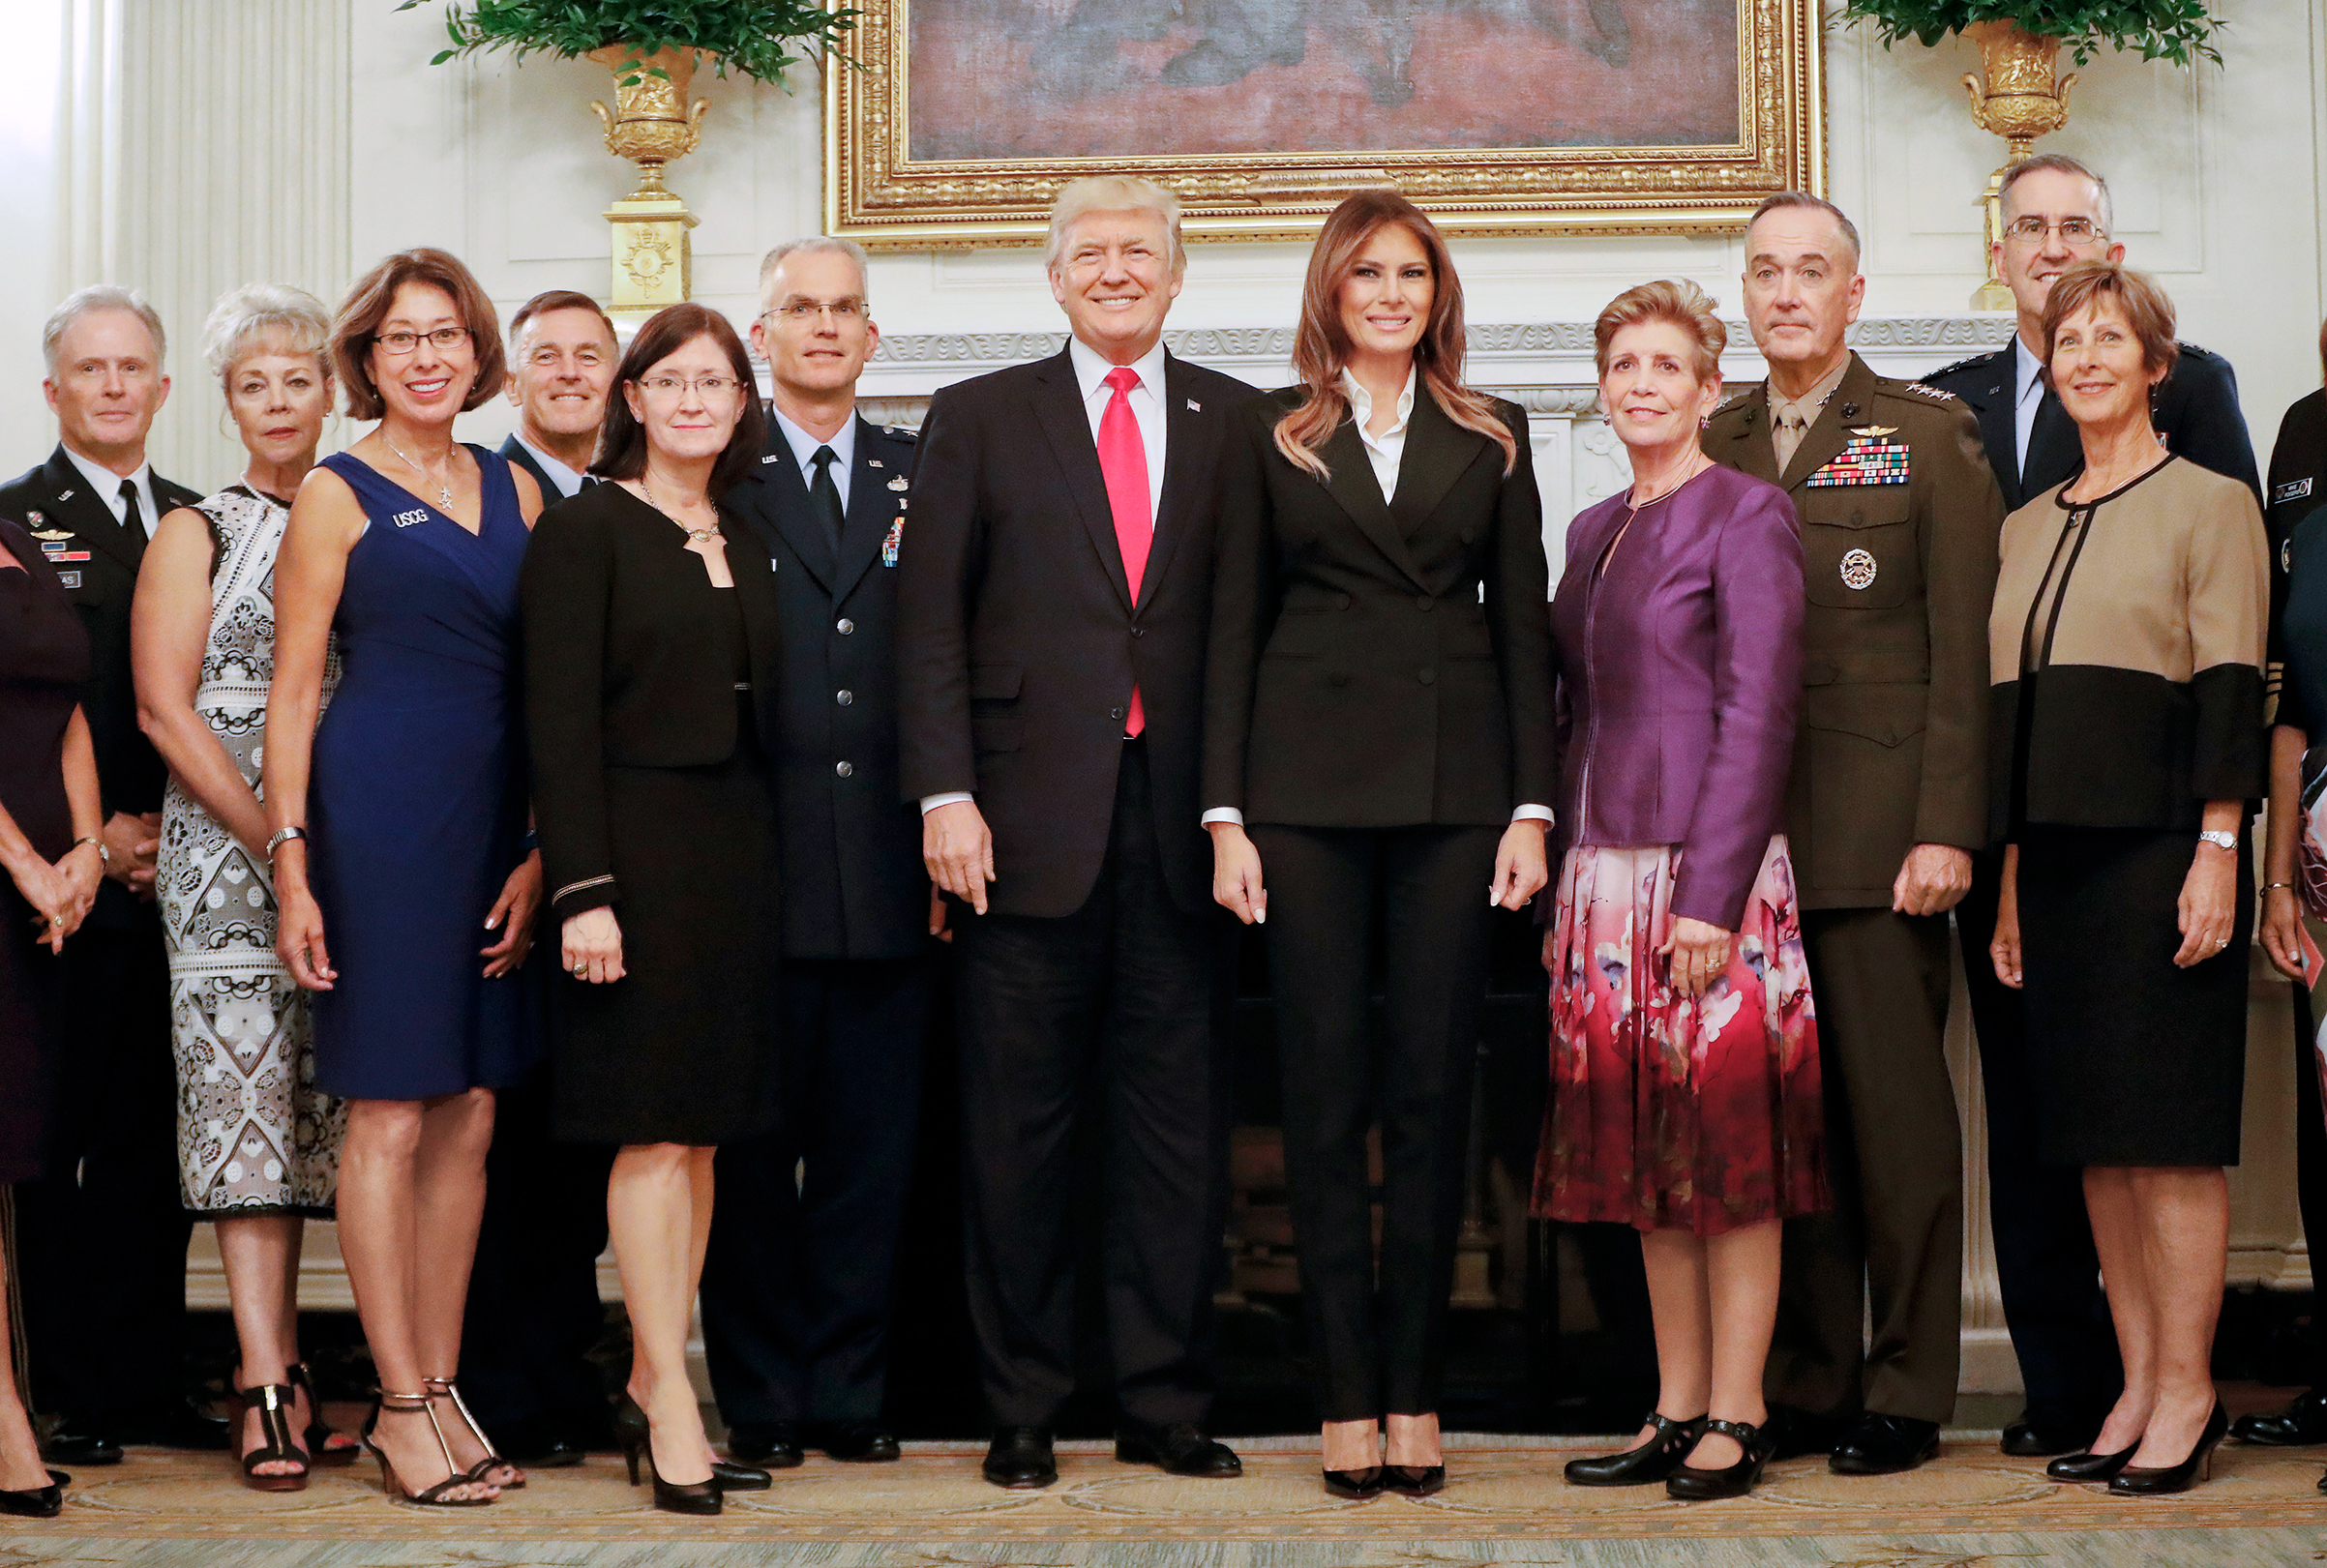 President Trump stands for a photo op after an Oct. 5 dinner with top U.S. military officials and their spouses